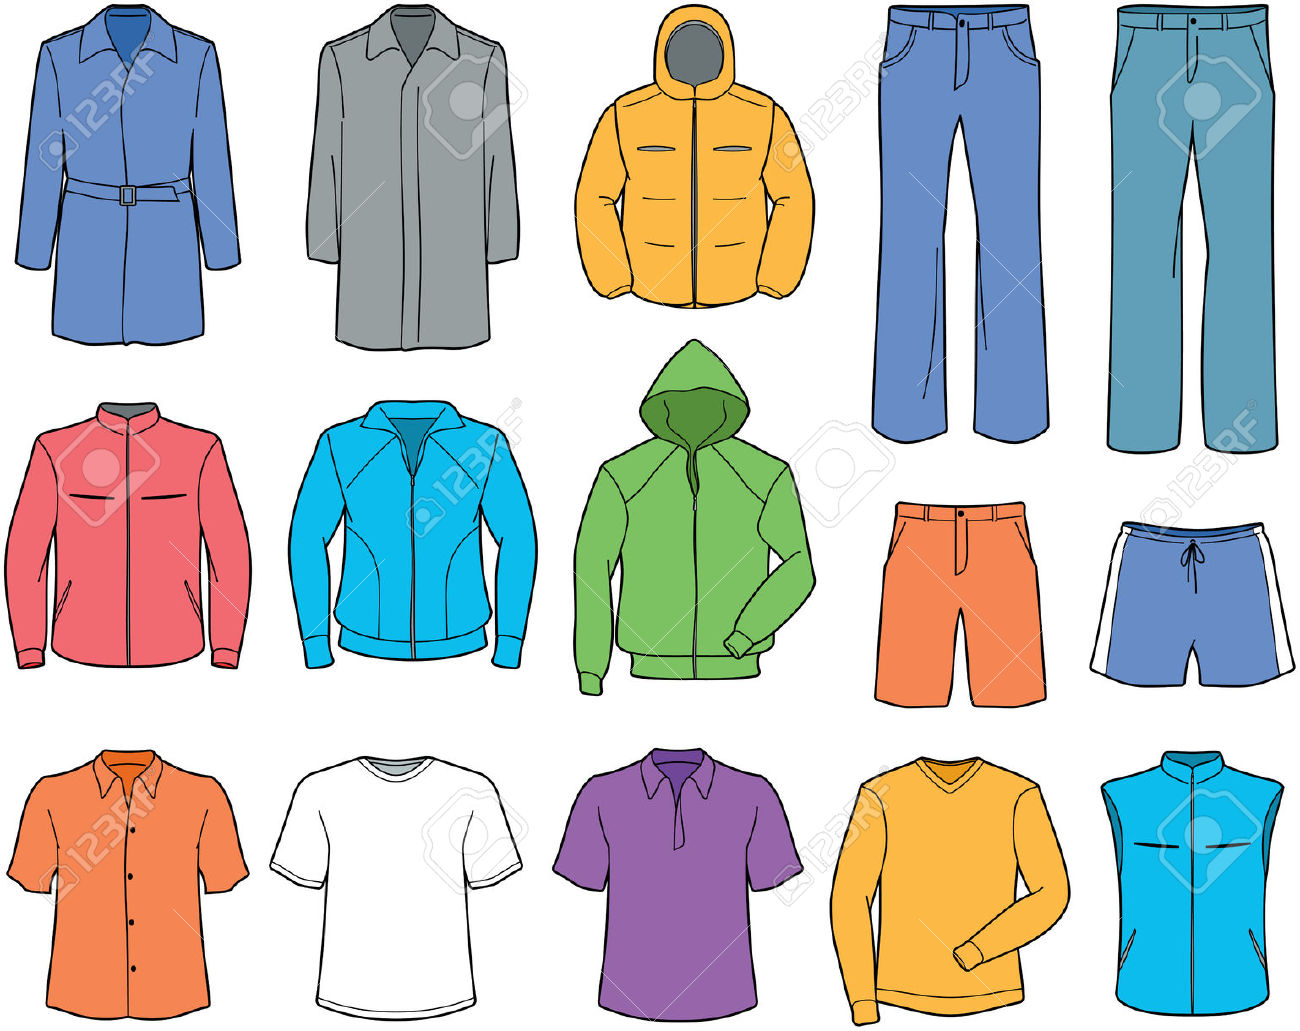 clothes clipart images - photo #4